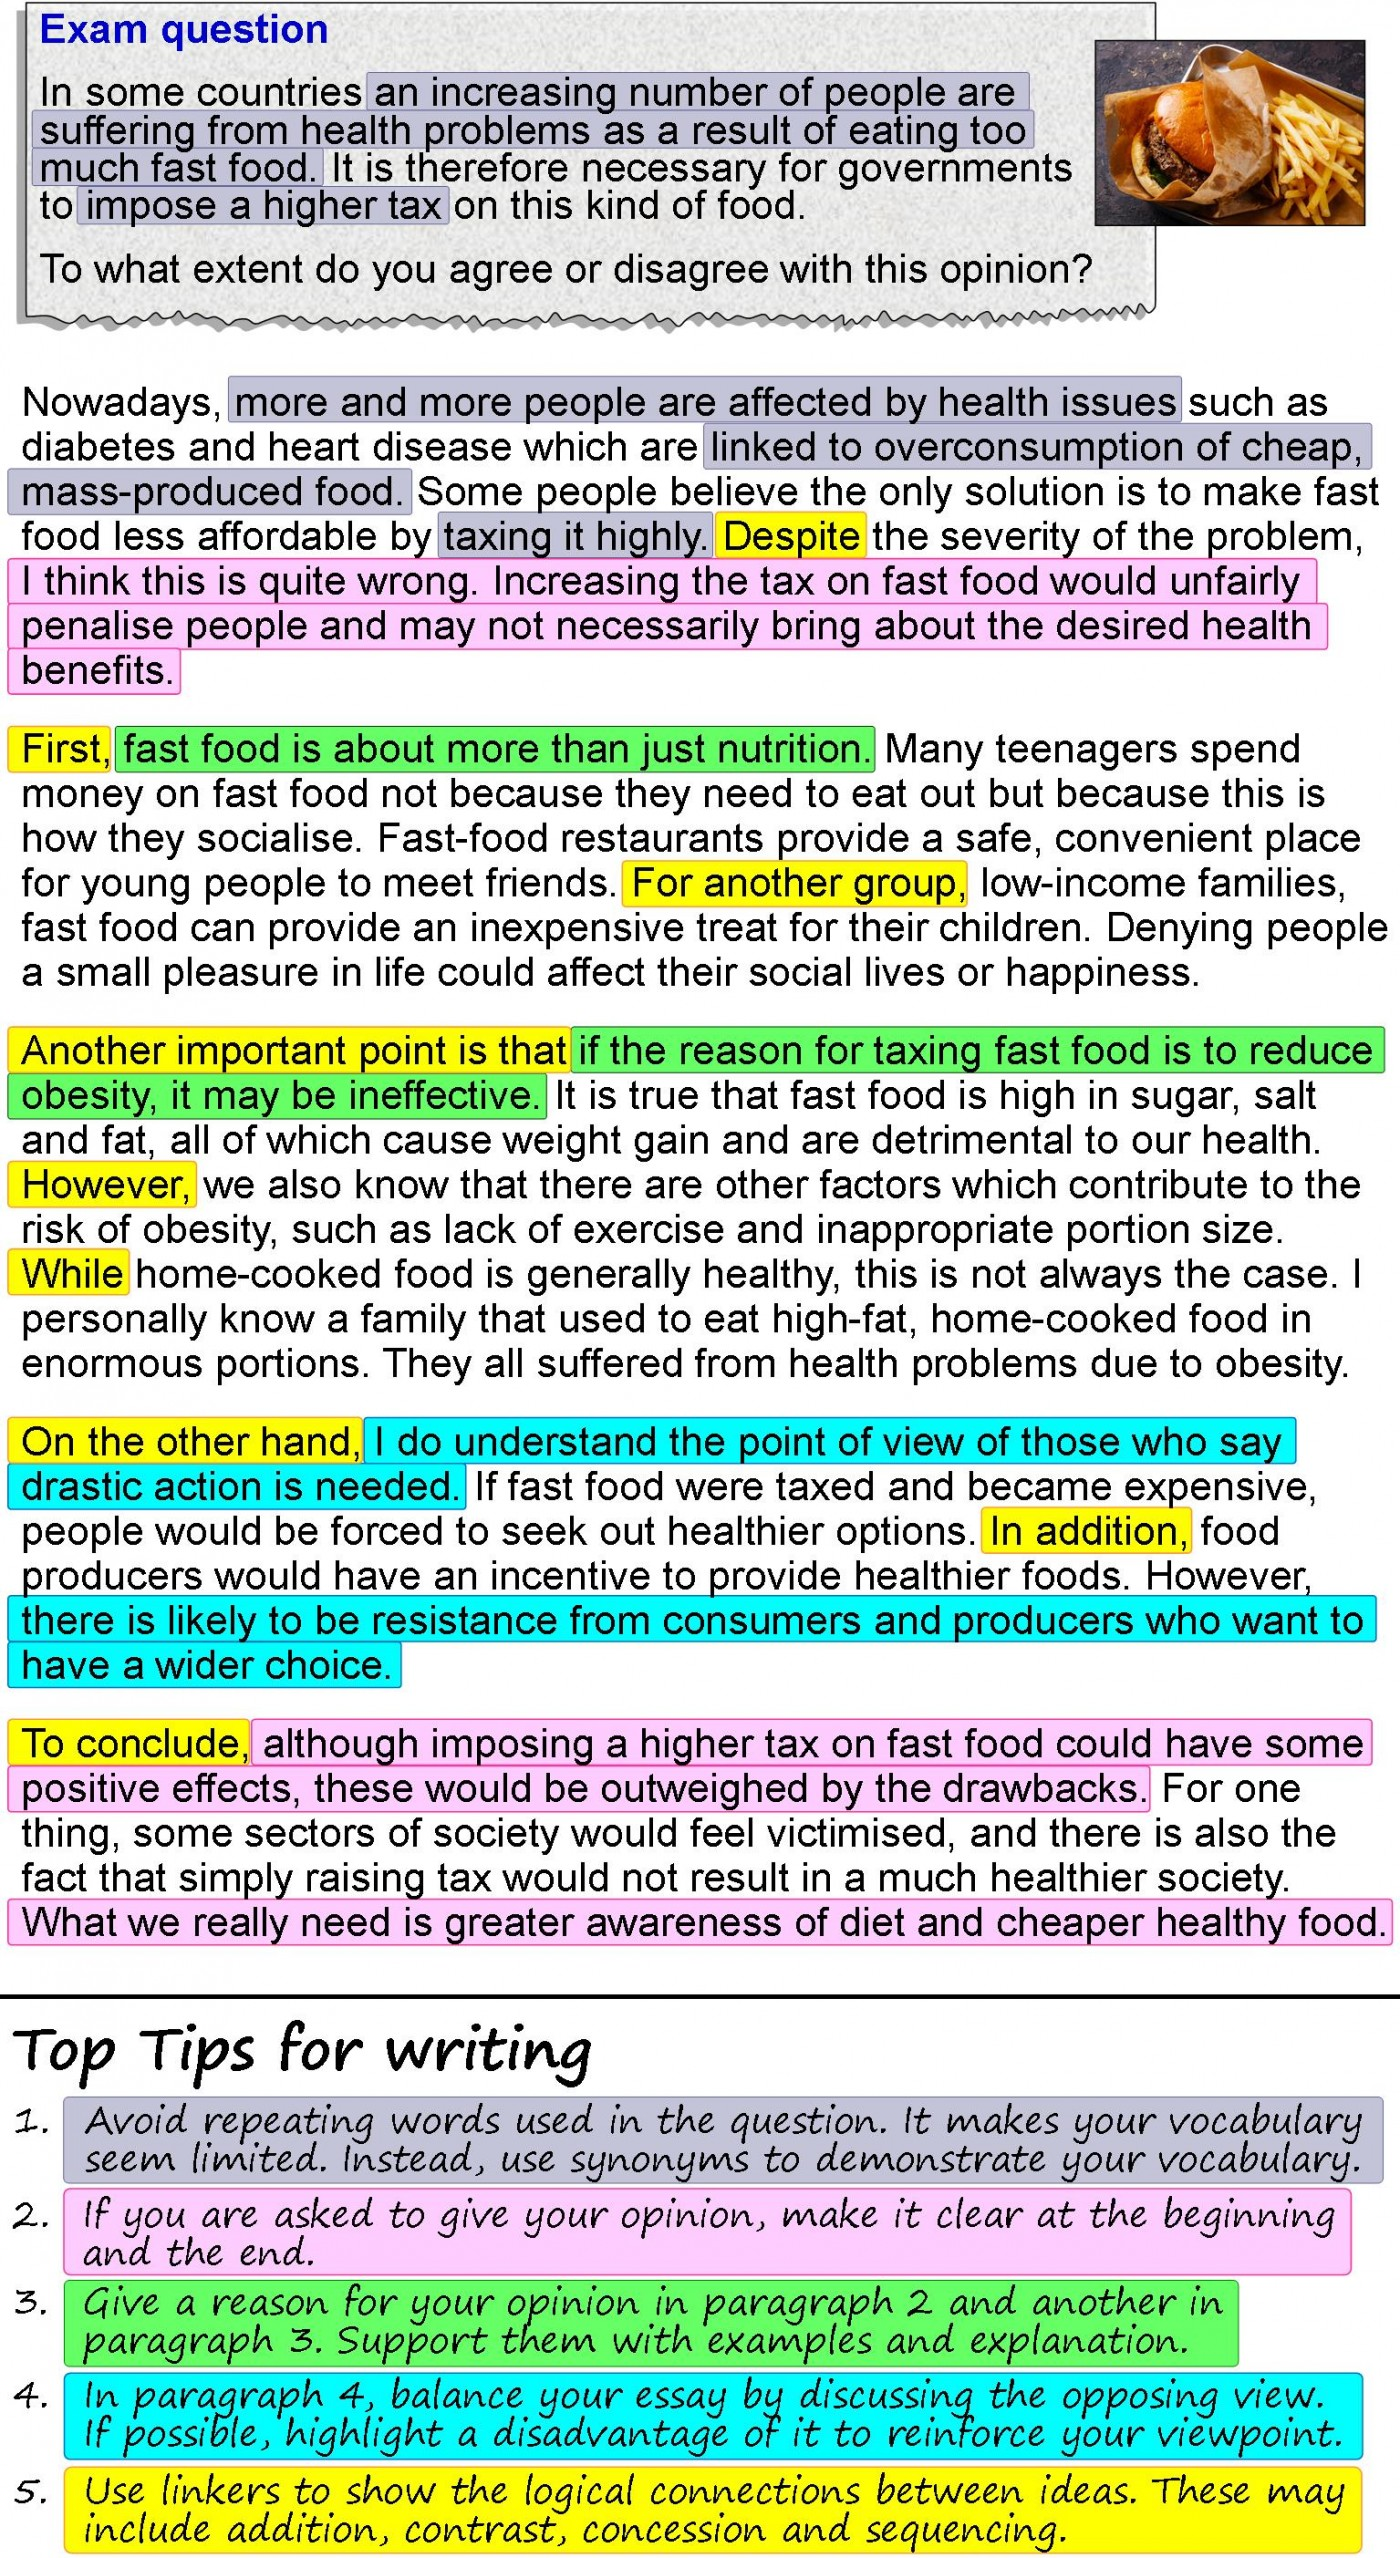 001 Opinion Essay About Fast Food Example An 4 Unbelievable Restaurants 1400